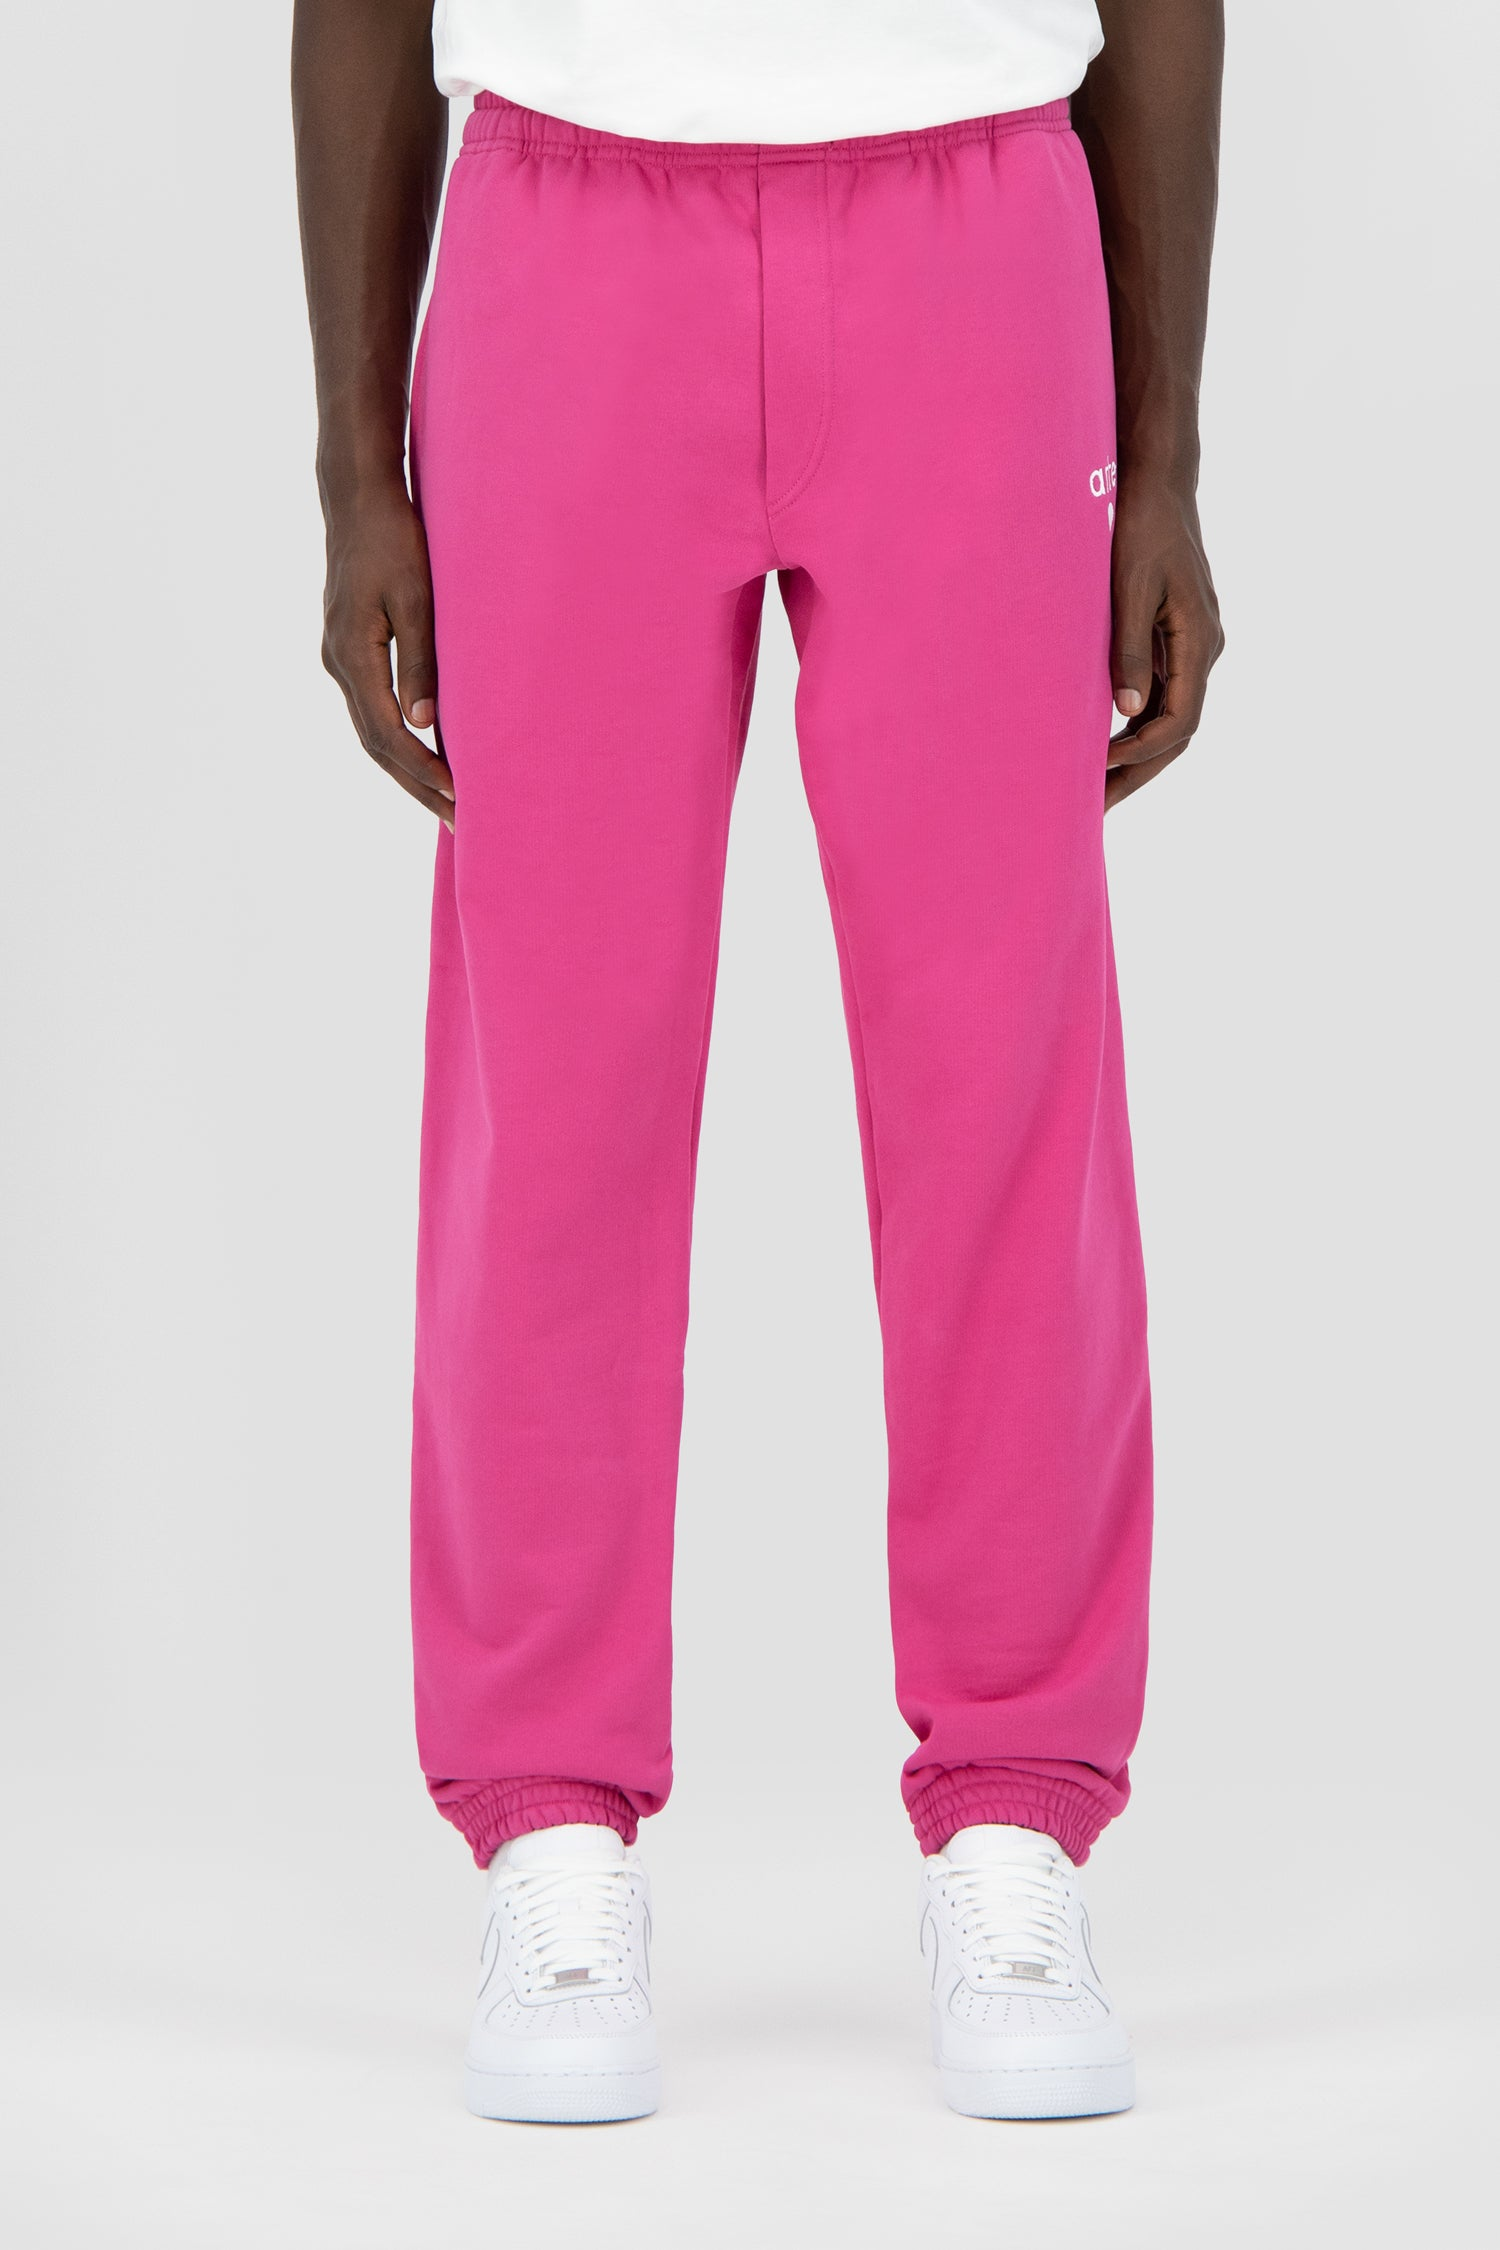 Tristian Heart Sweatpants - Rose